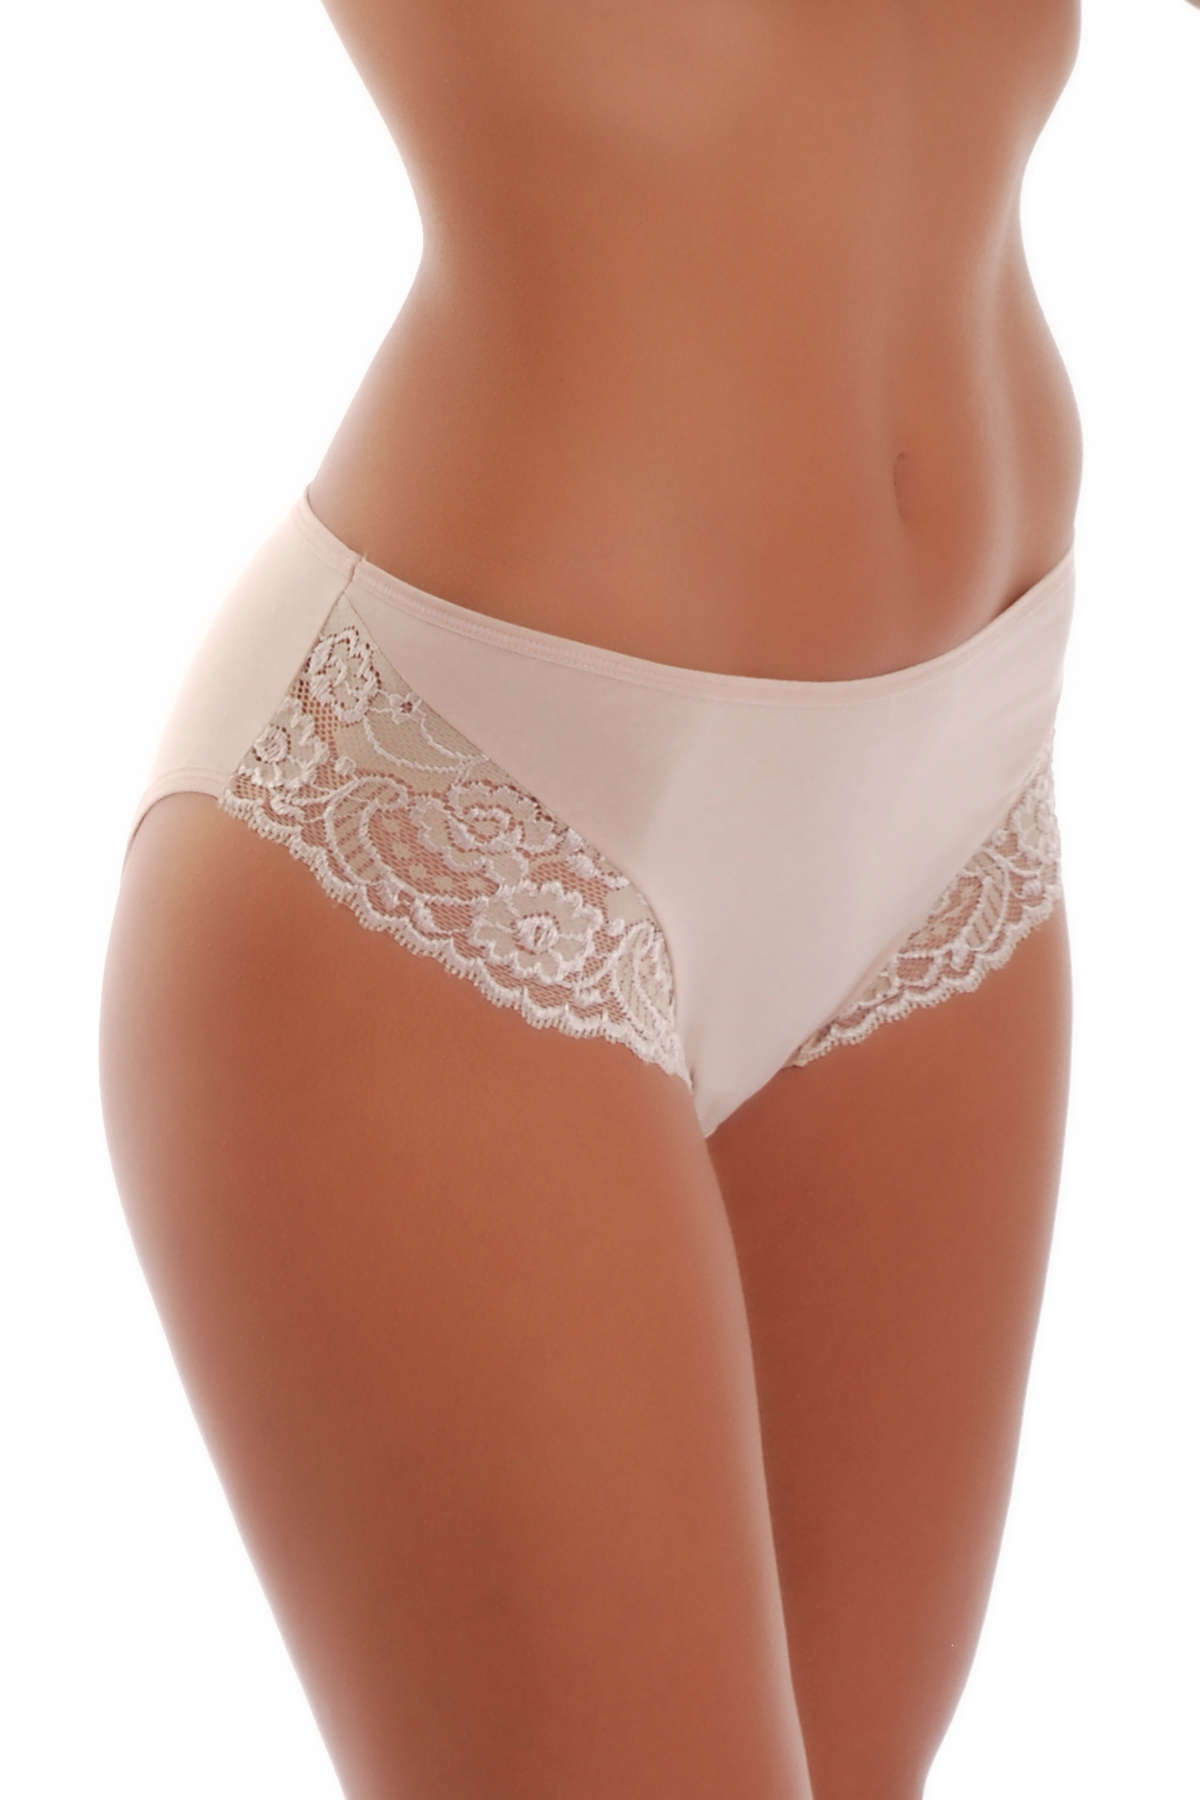 Deep Cotton Classic Briefs Panties Wide Belt With Lace 025